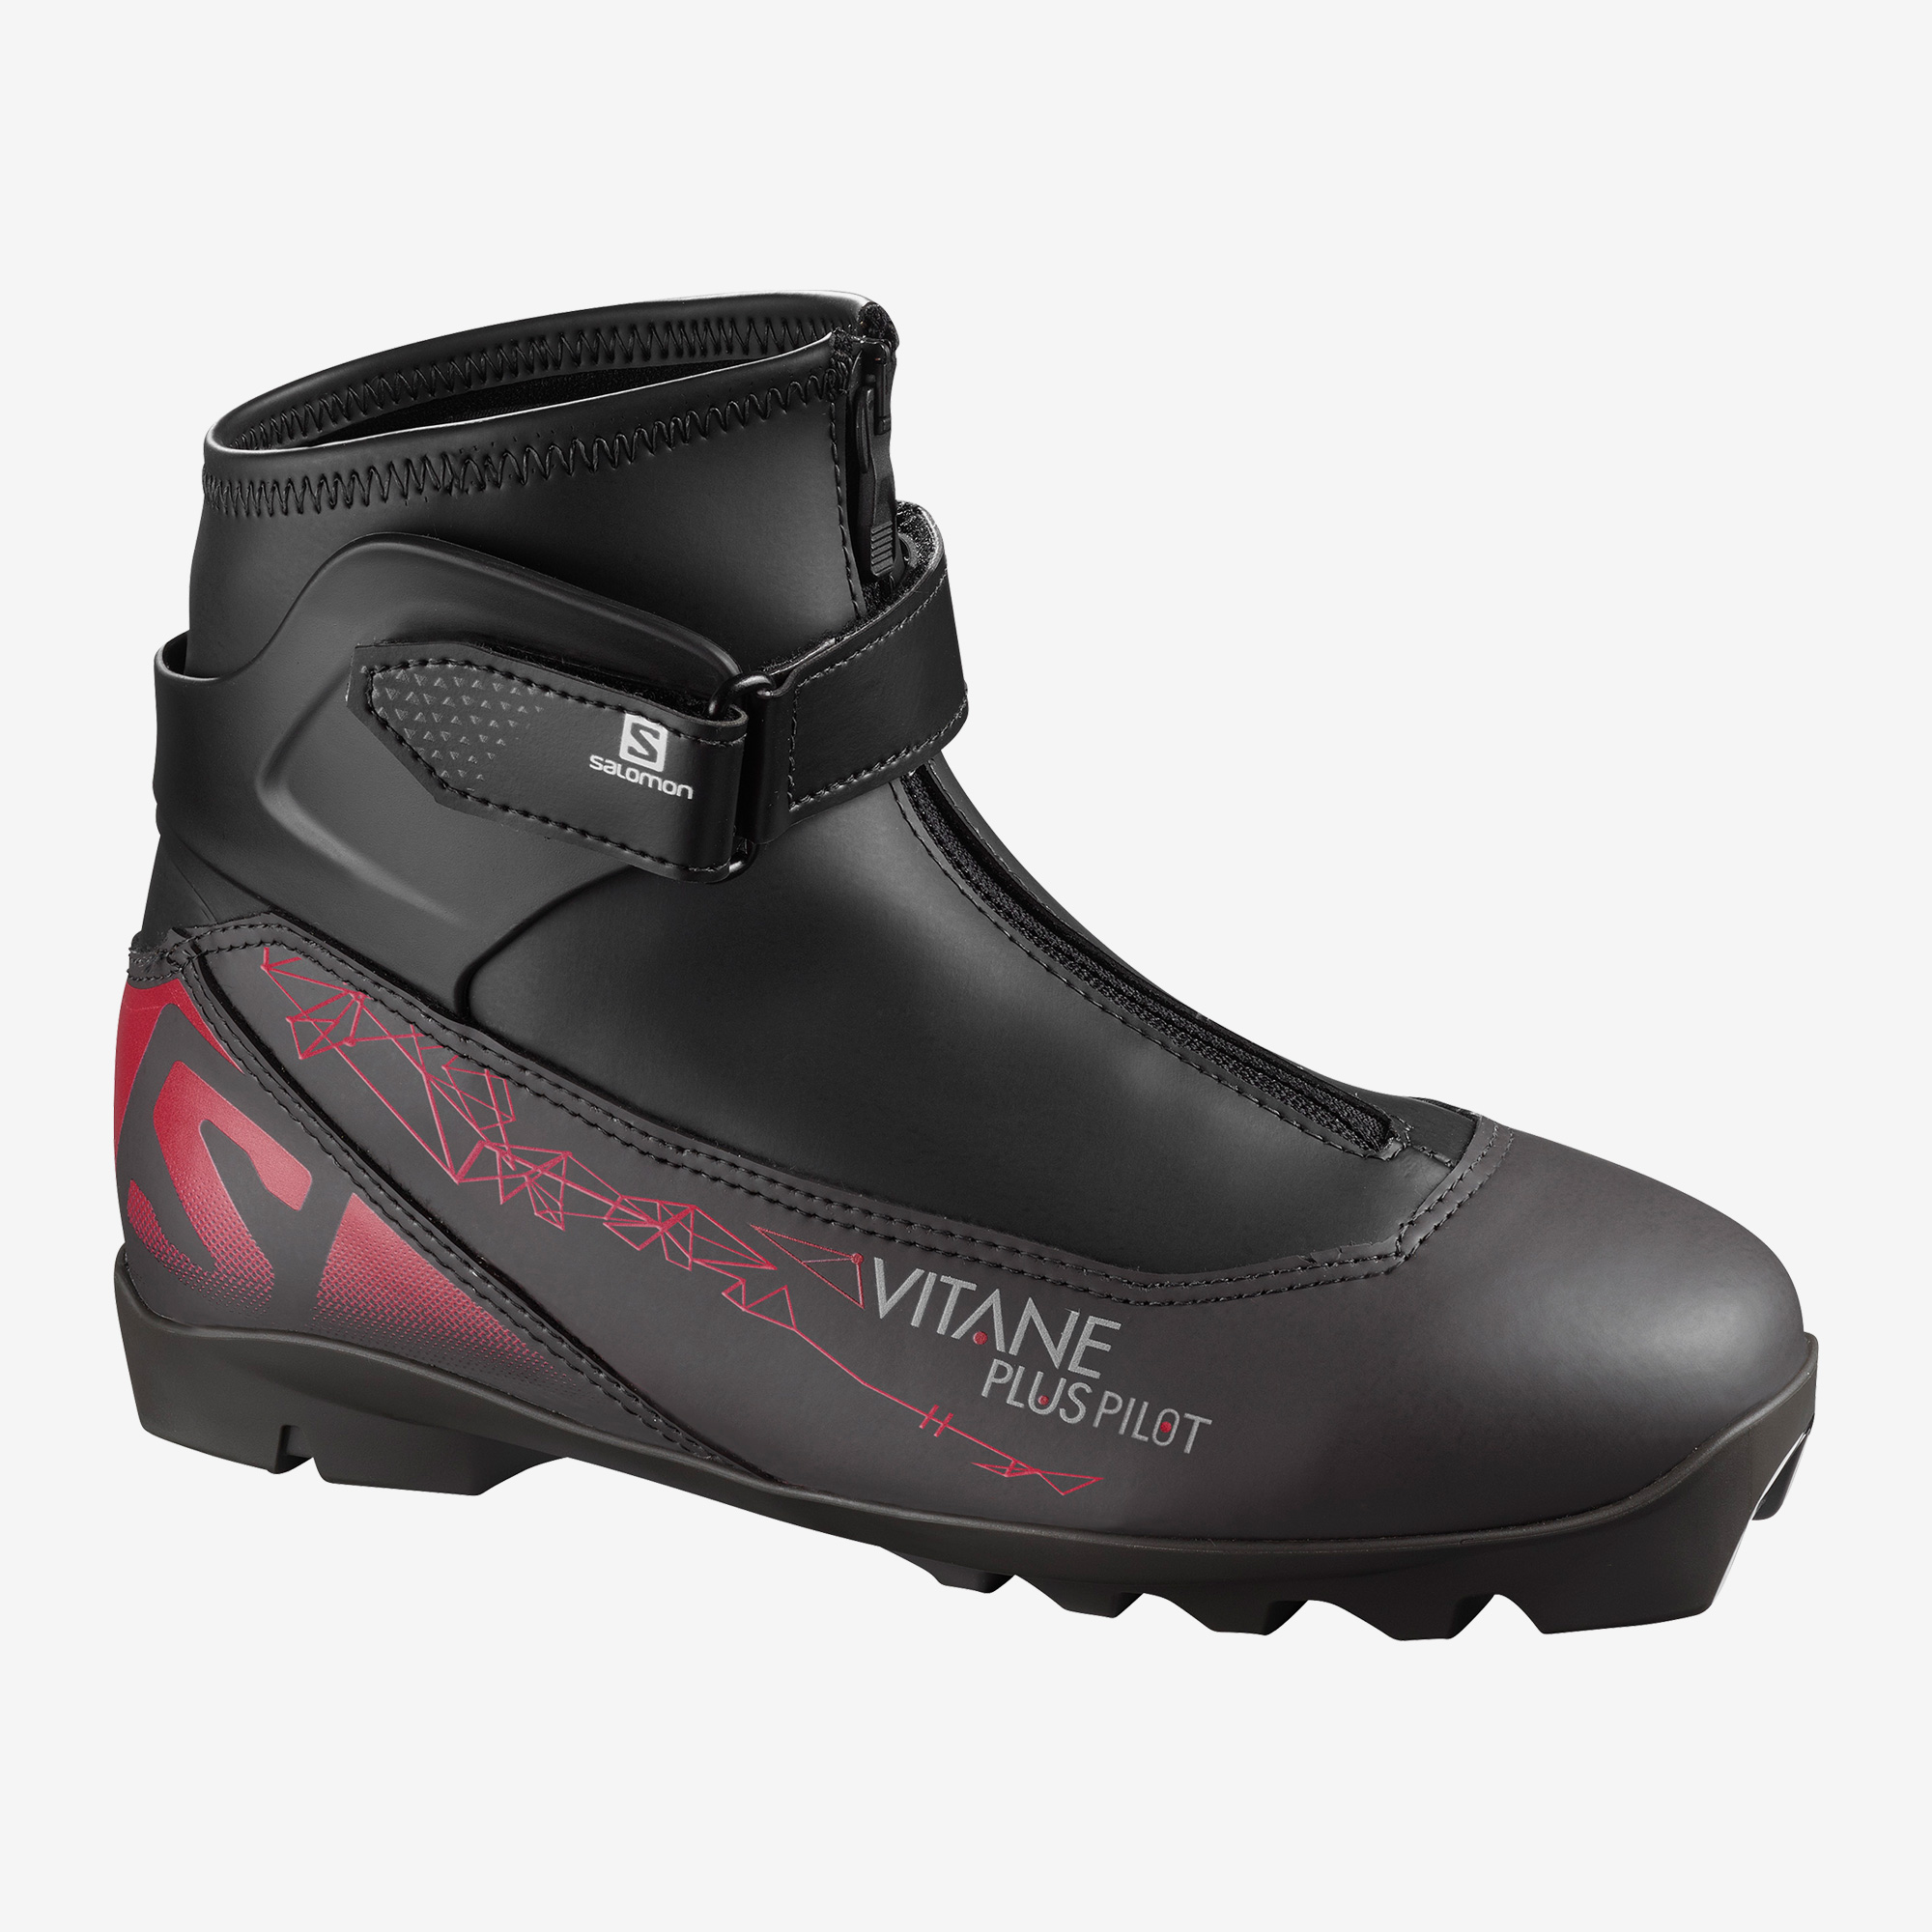 Salomon Vitane Plus SNS PILOT women - vel. 8